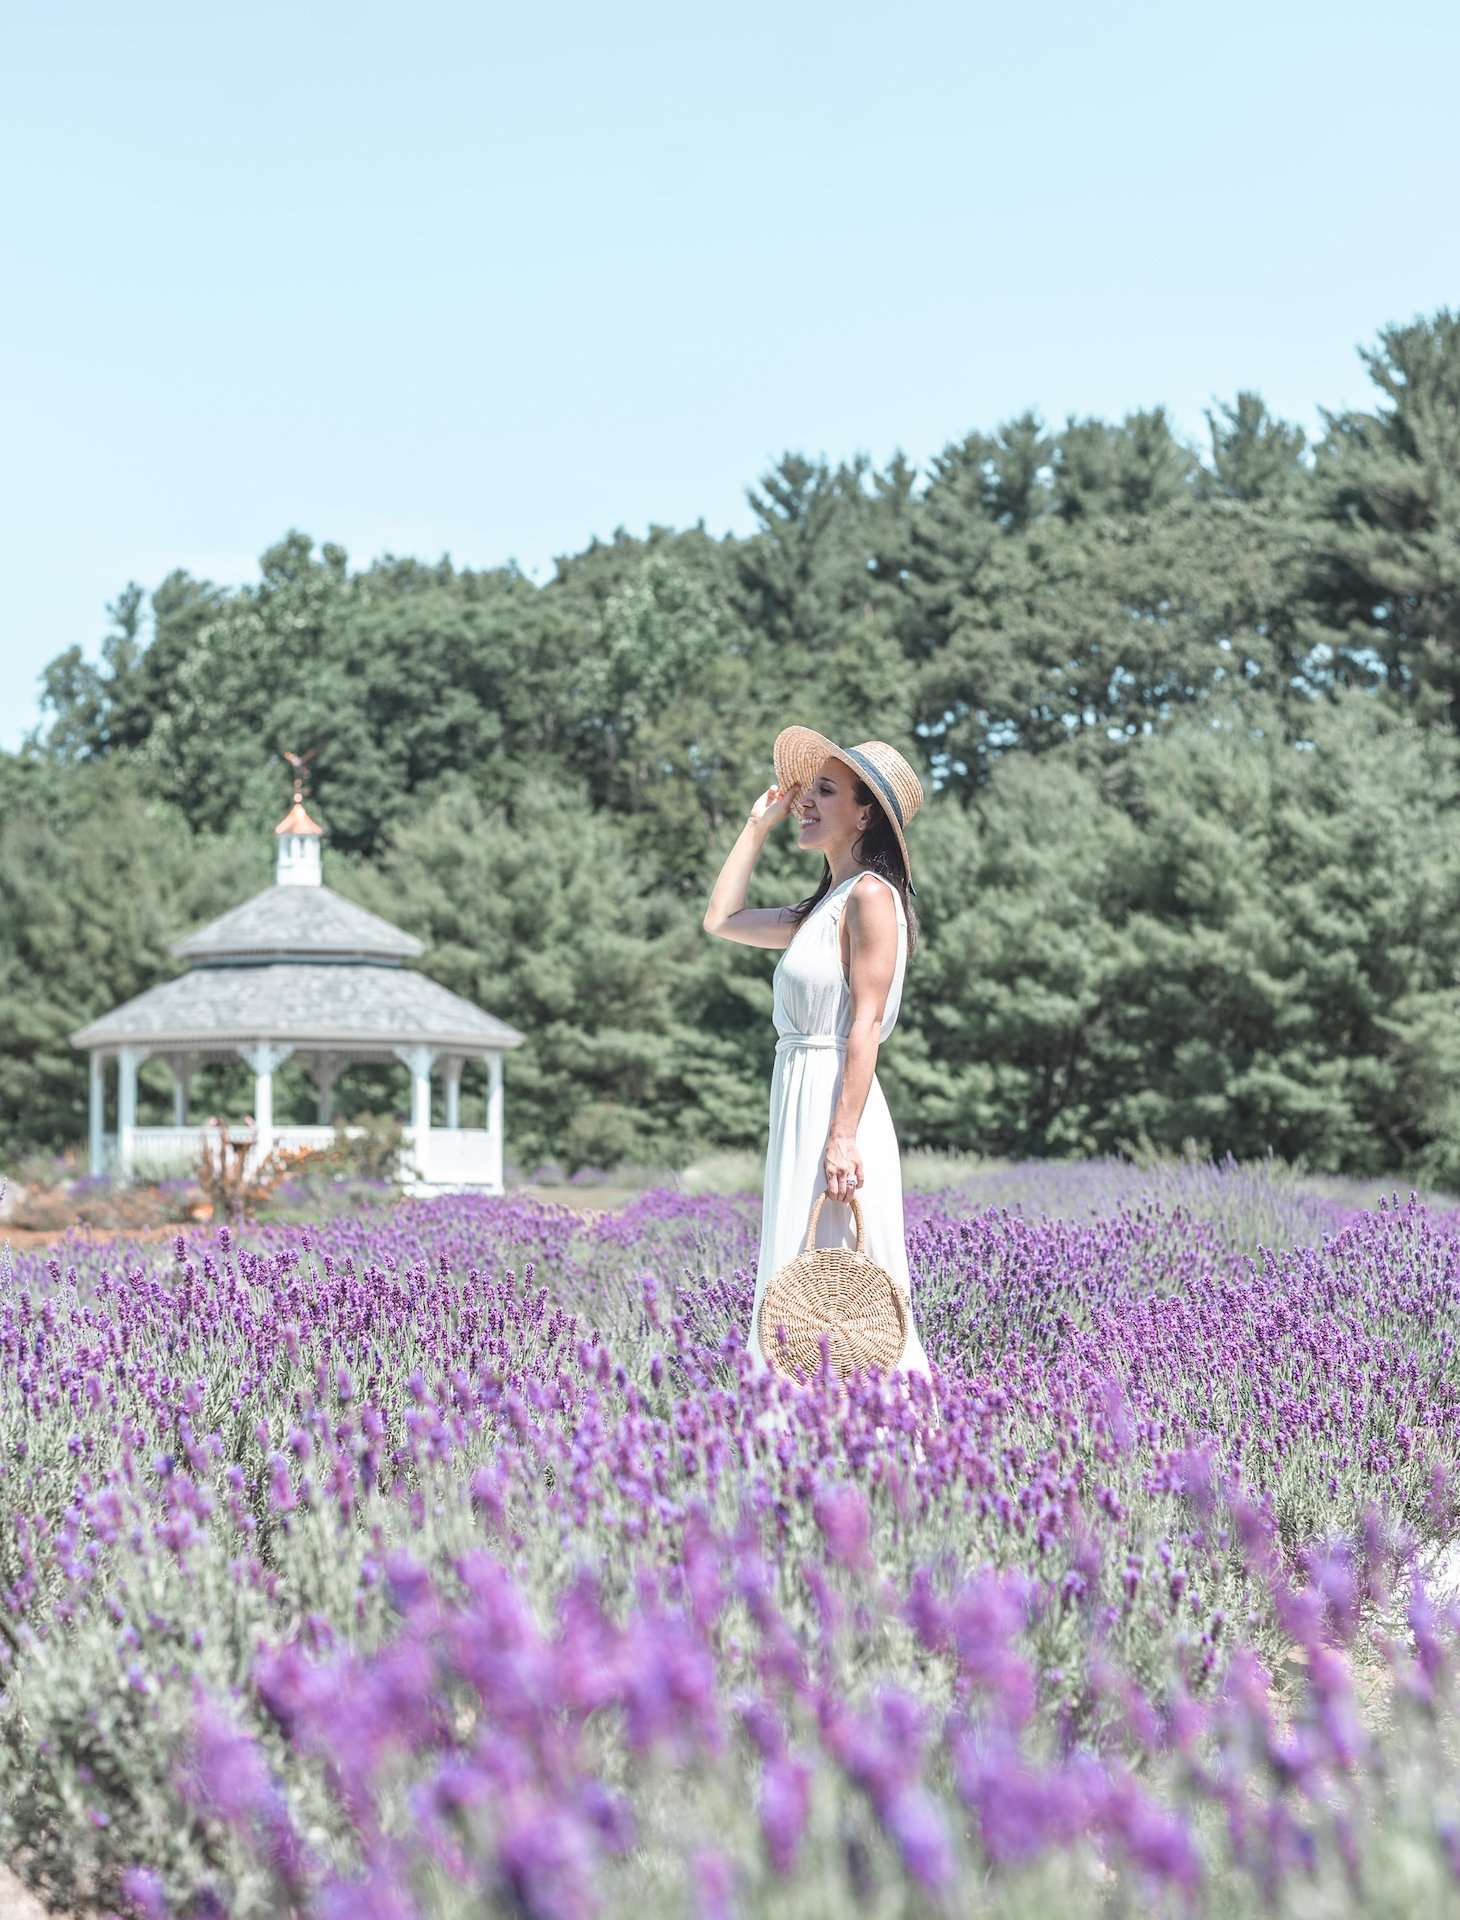 Lavender Pond Farm in Killingworth, Connecticut